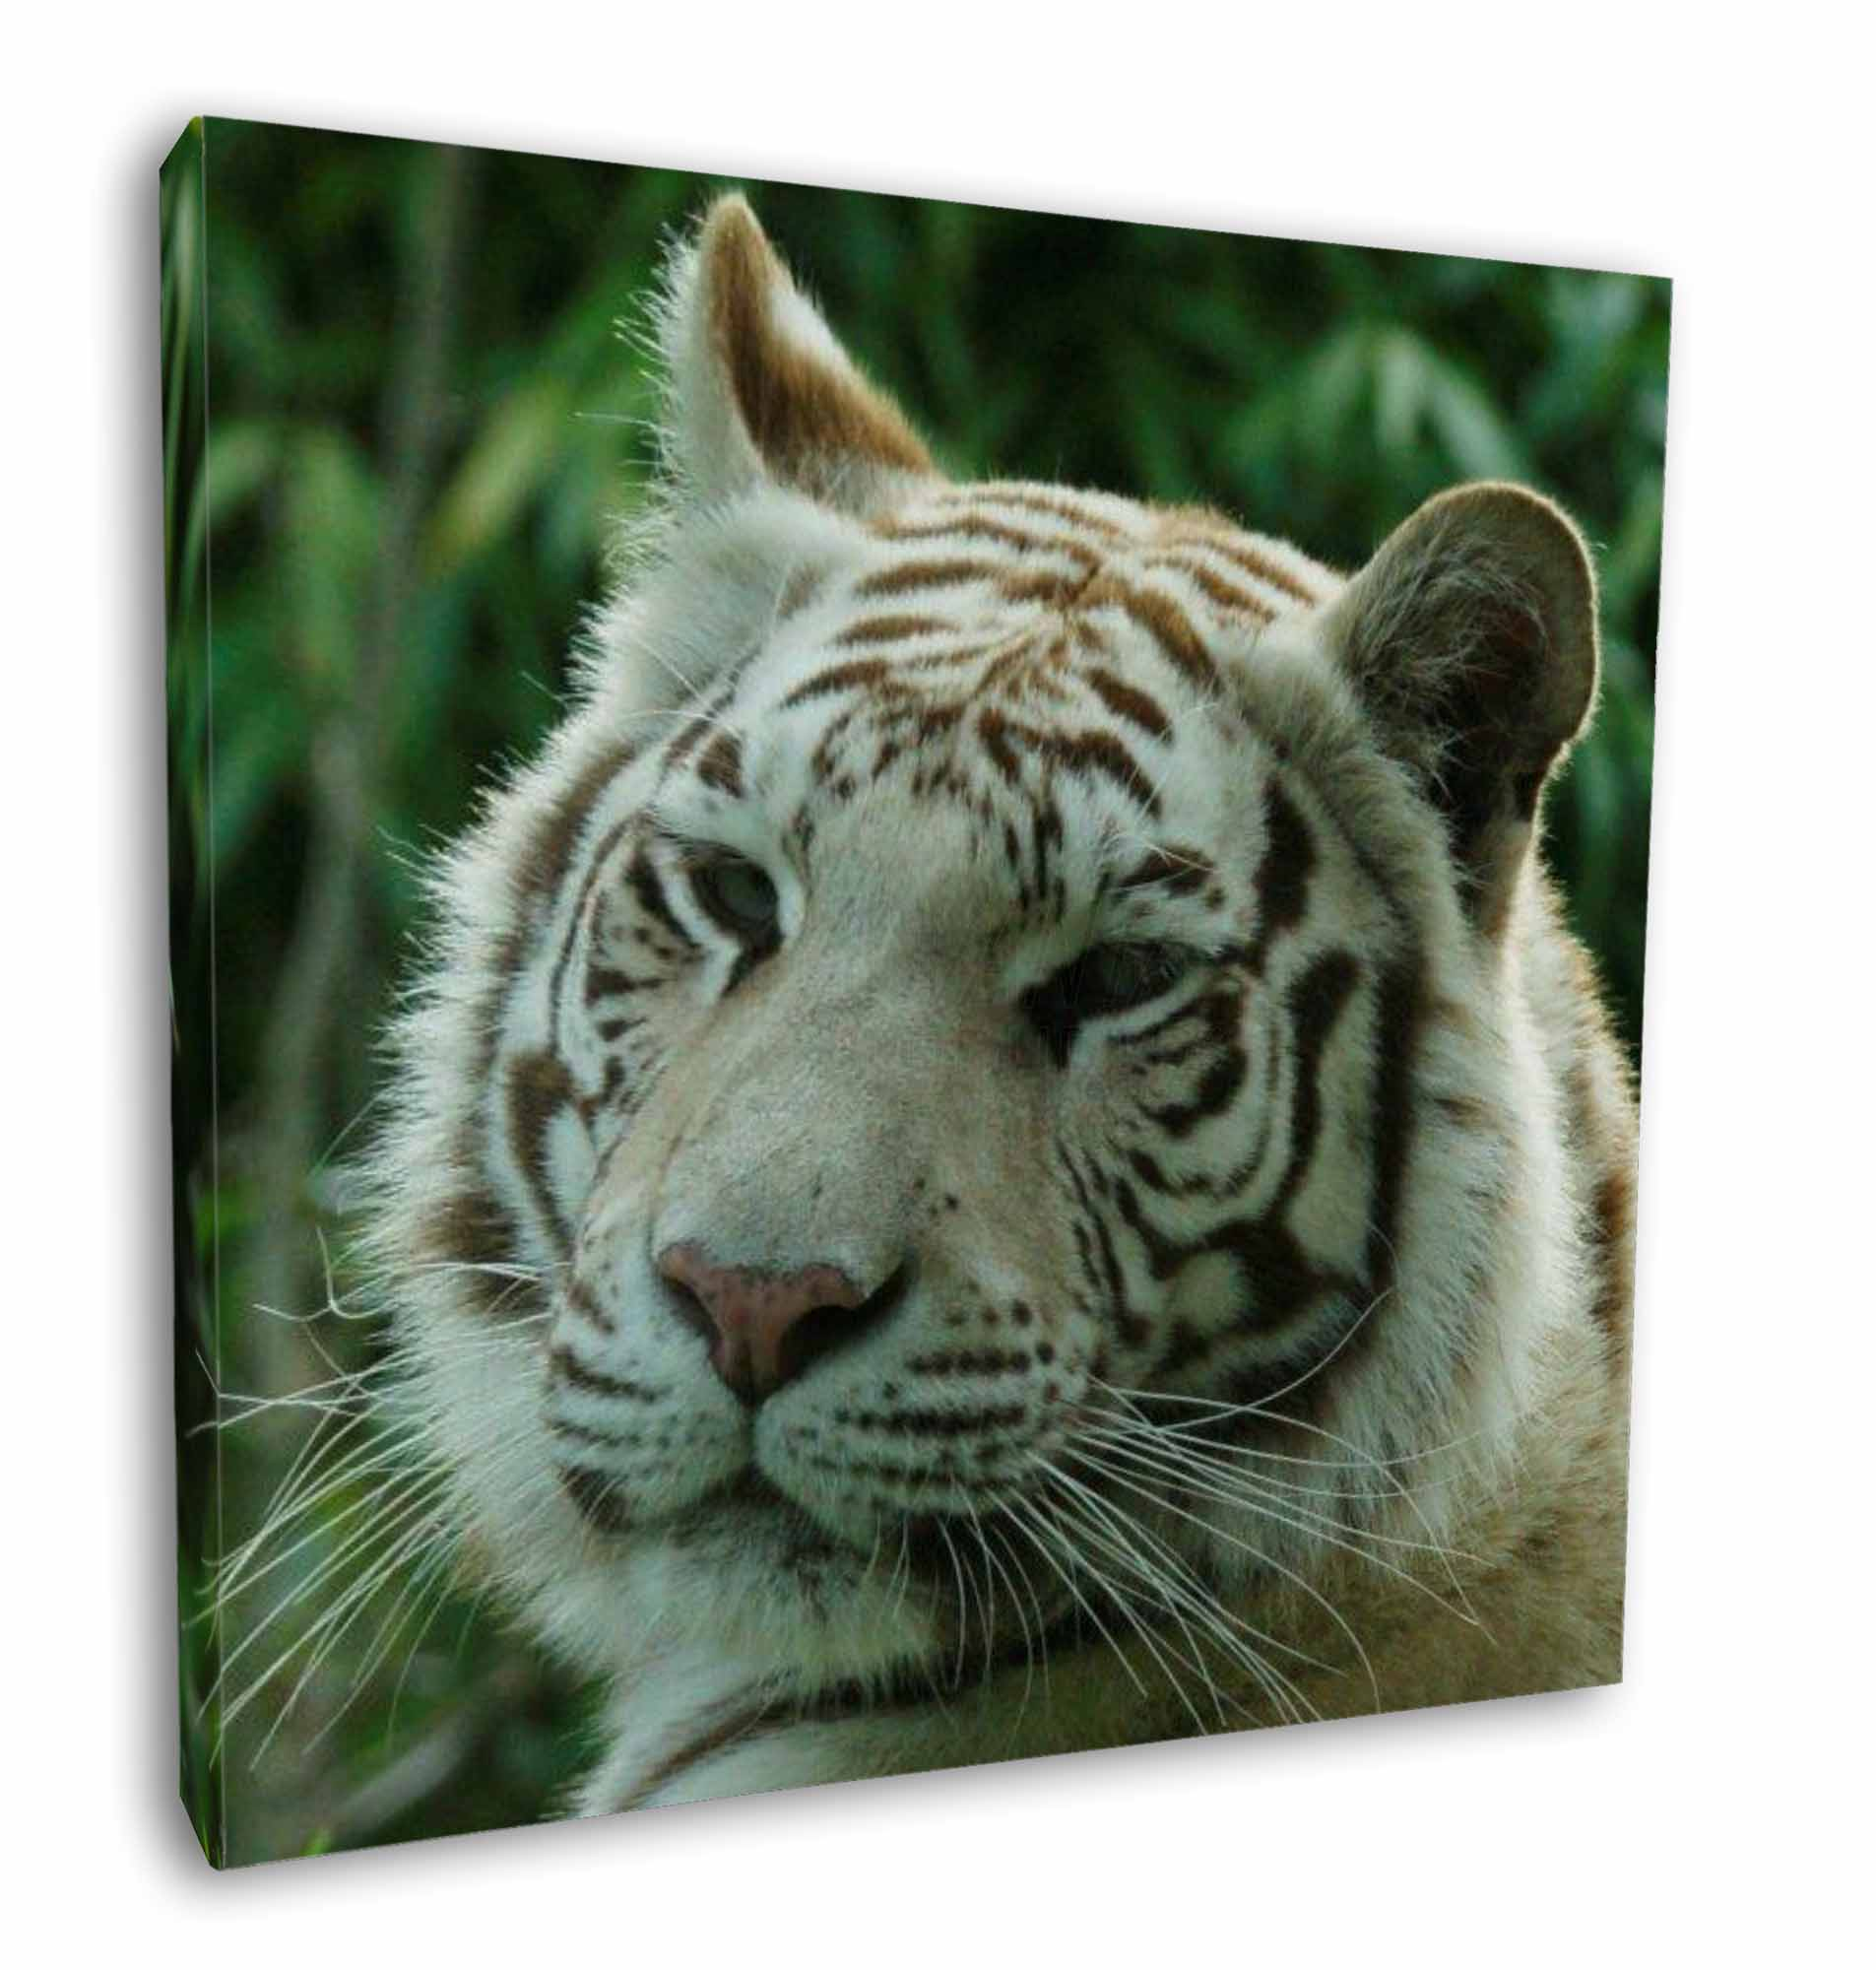 White Tiger In Snow Set of 4 Placemats and Coasters Home Cookware, Dining & Bar Supplies